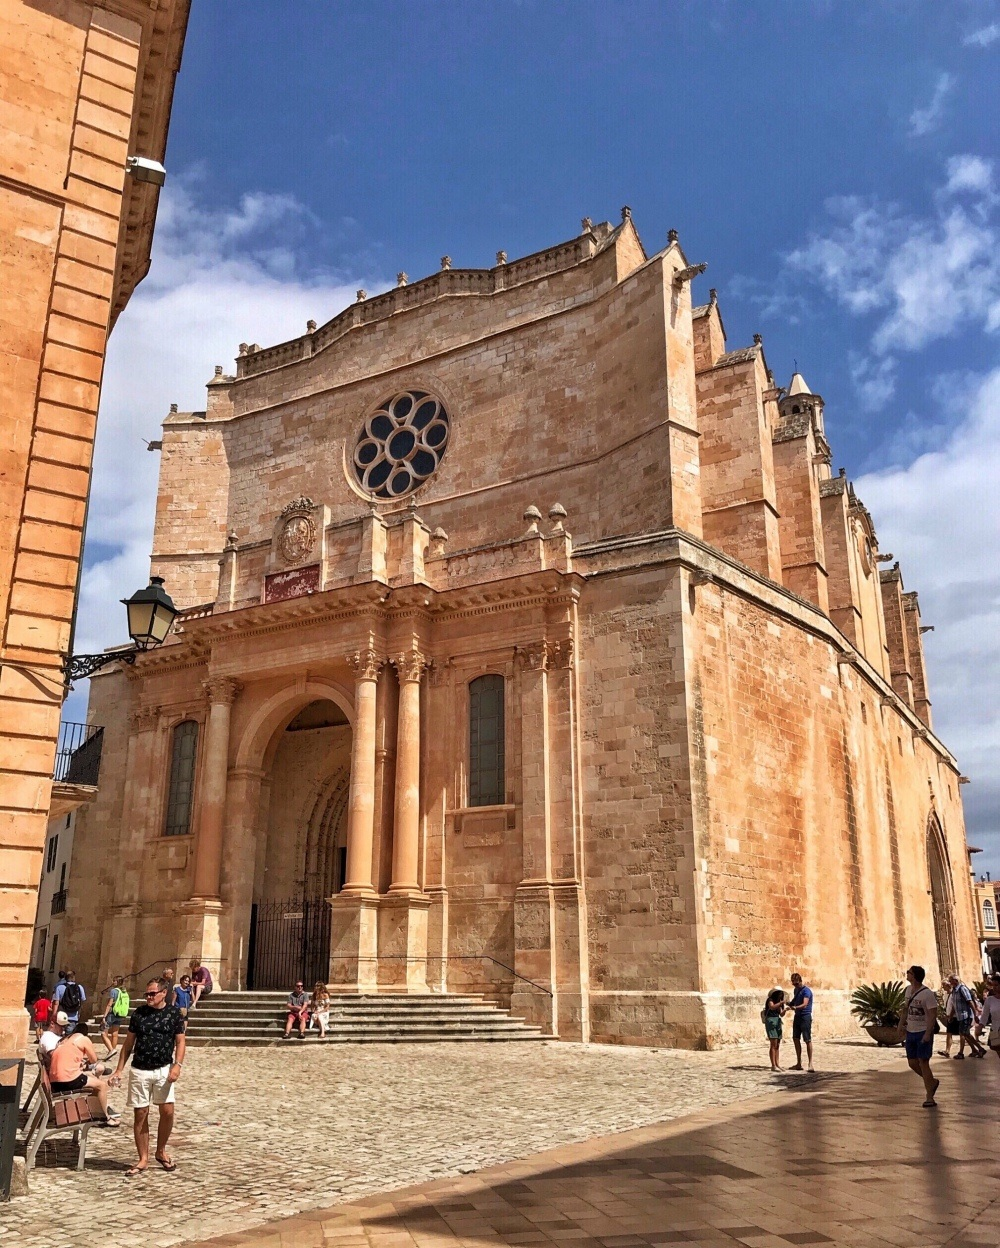 Cathedral in Ciutadella Menorca Spain Photo Heatheronhertravels.com